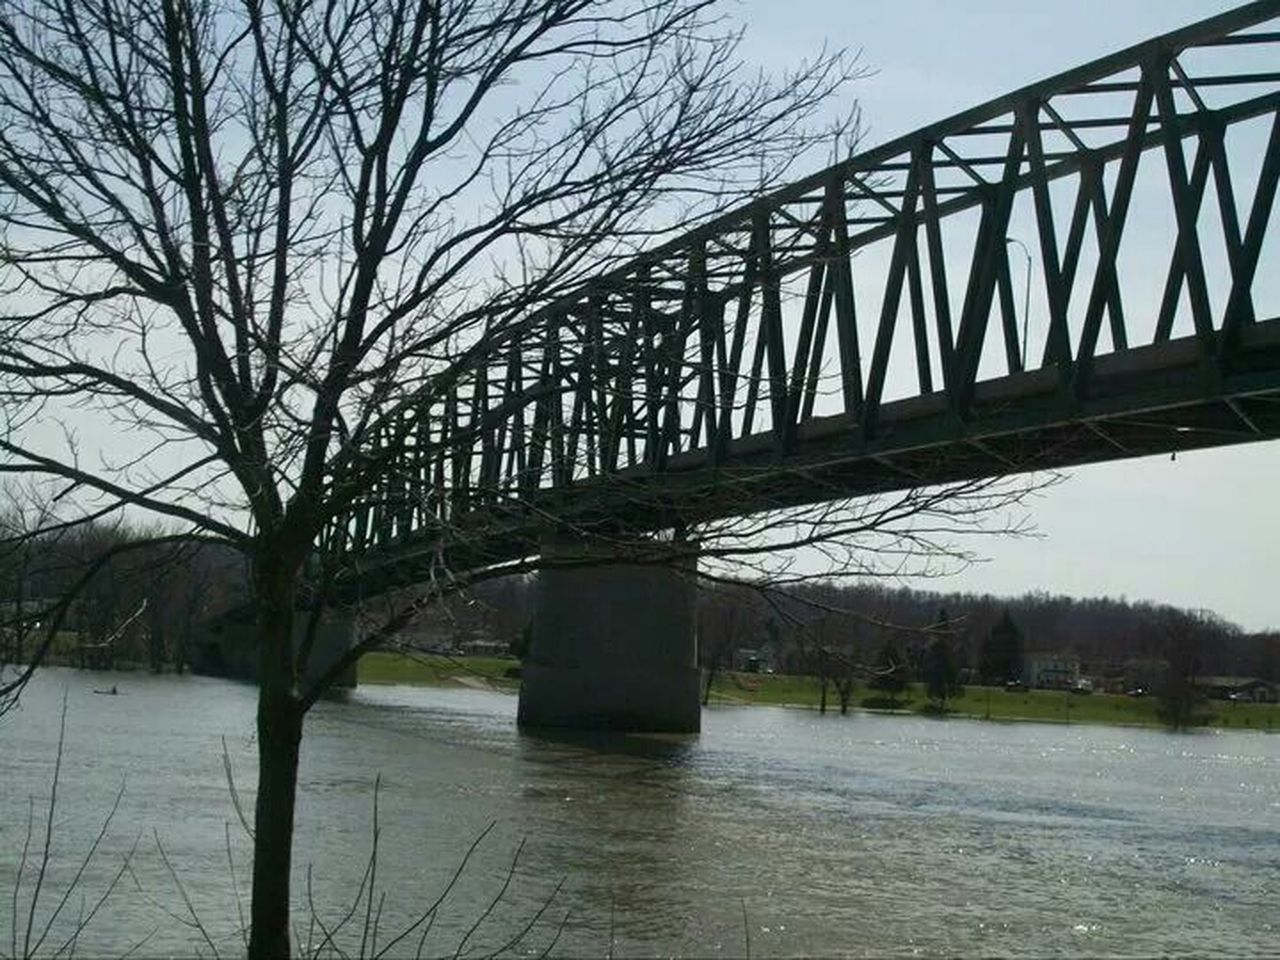 bridge - man made structure, connection, architecture, engineering, river, water, built structure, outdoors, day, tree, bare tree, sky, transportation, bridge, no people, nature